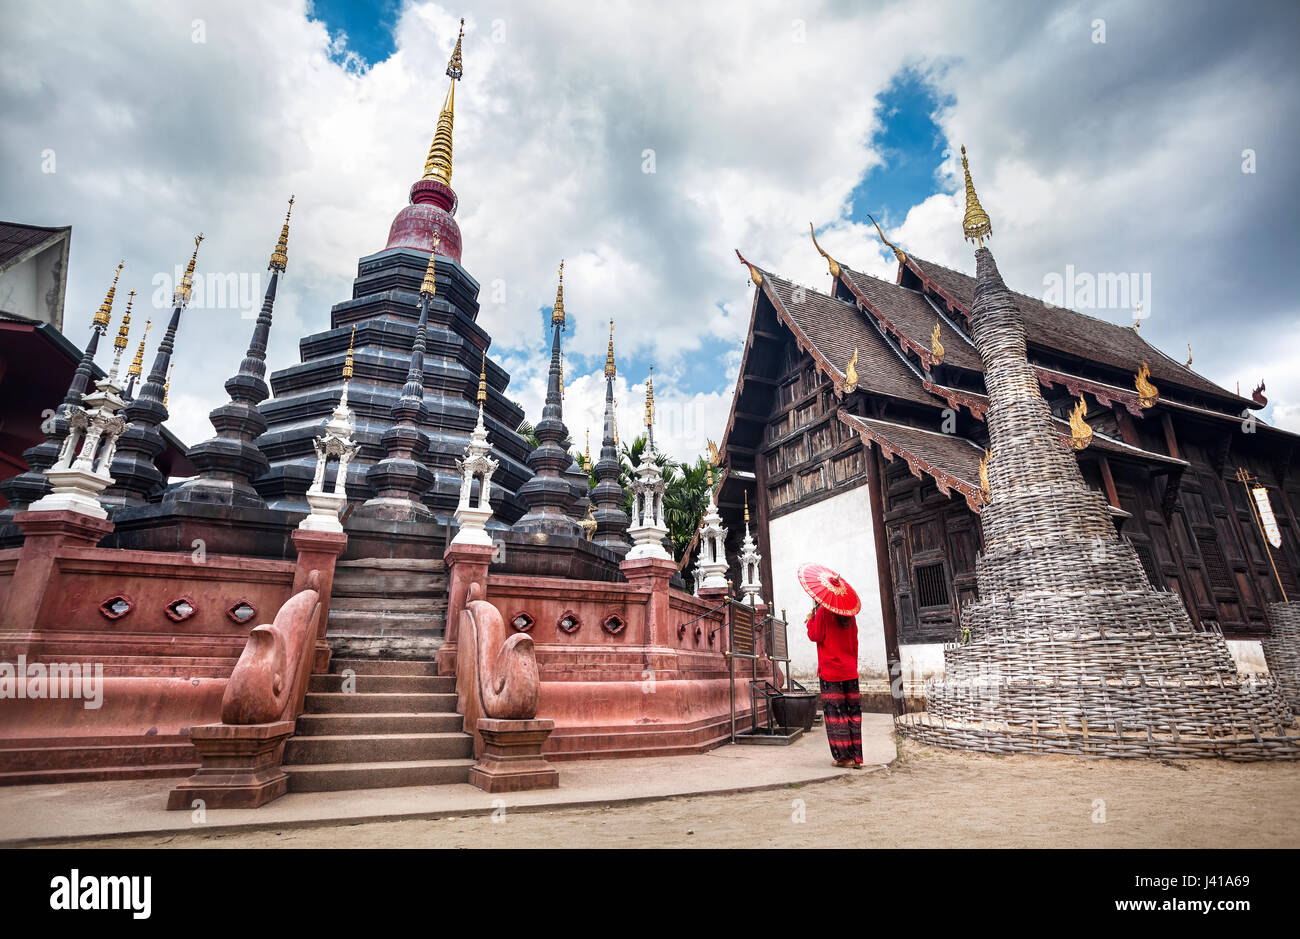 Woman with red traditional Thai umbrella looking at Black temple Wat Phan Tao made from wood in Chiang Mai, Thailand - Stock Image